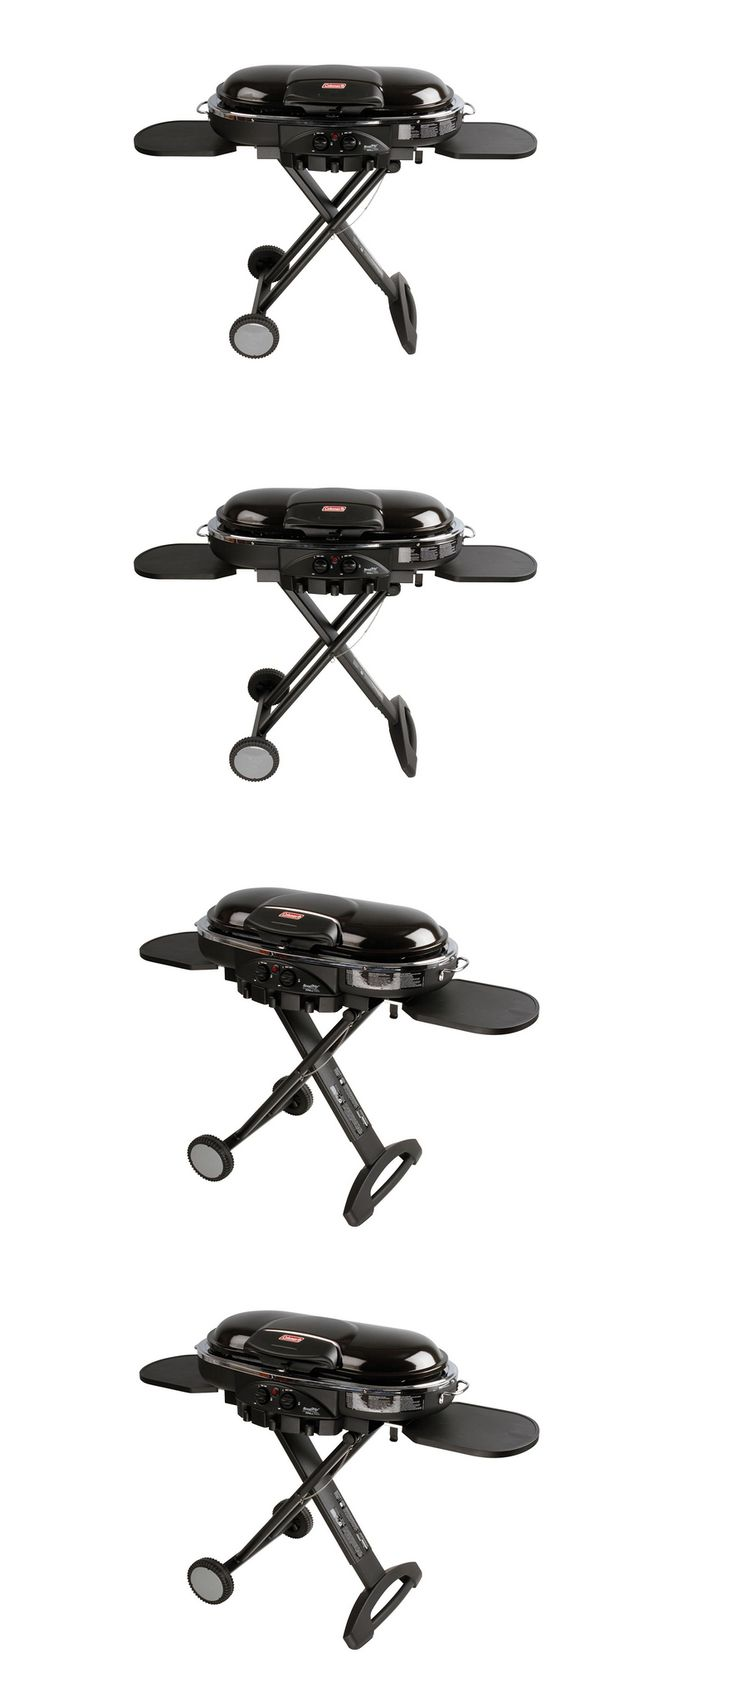 Camping BBQs and Grills 181388: Bbq Propane Portable Grill Lxe Adjustable Camping Outdoor Sports Patio Kitchen BUY IT NOW ONLY: $249.99